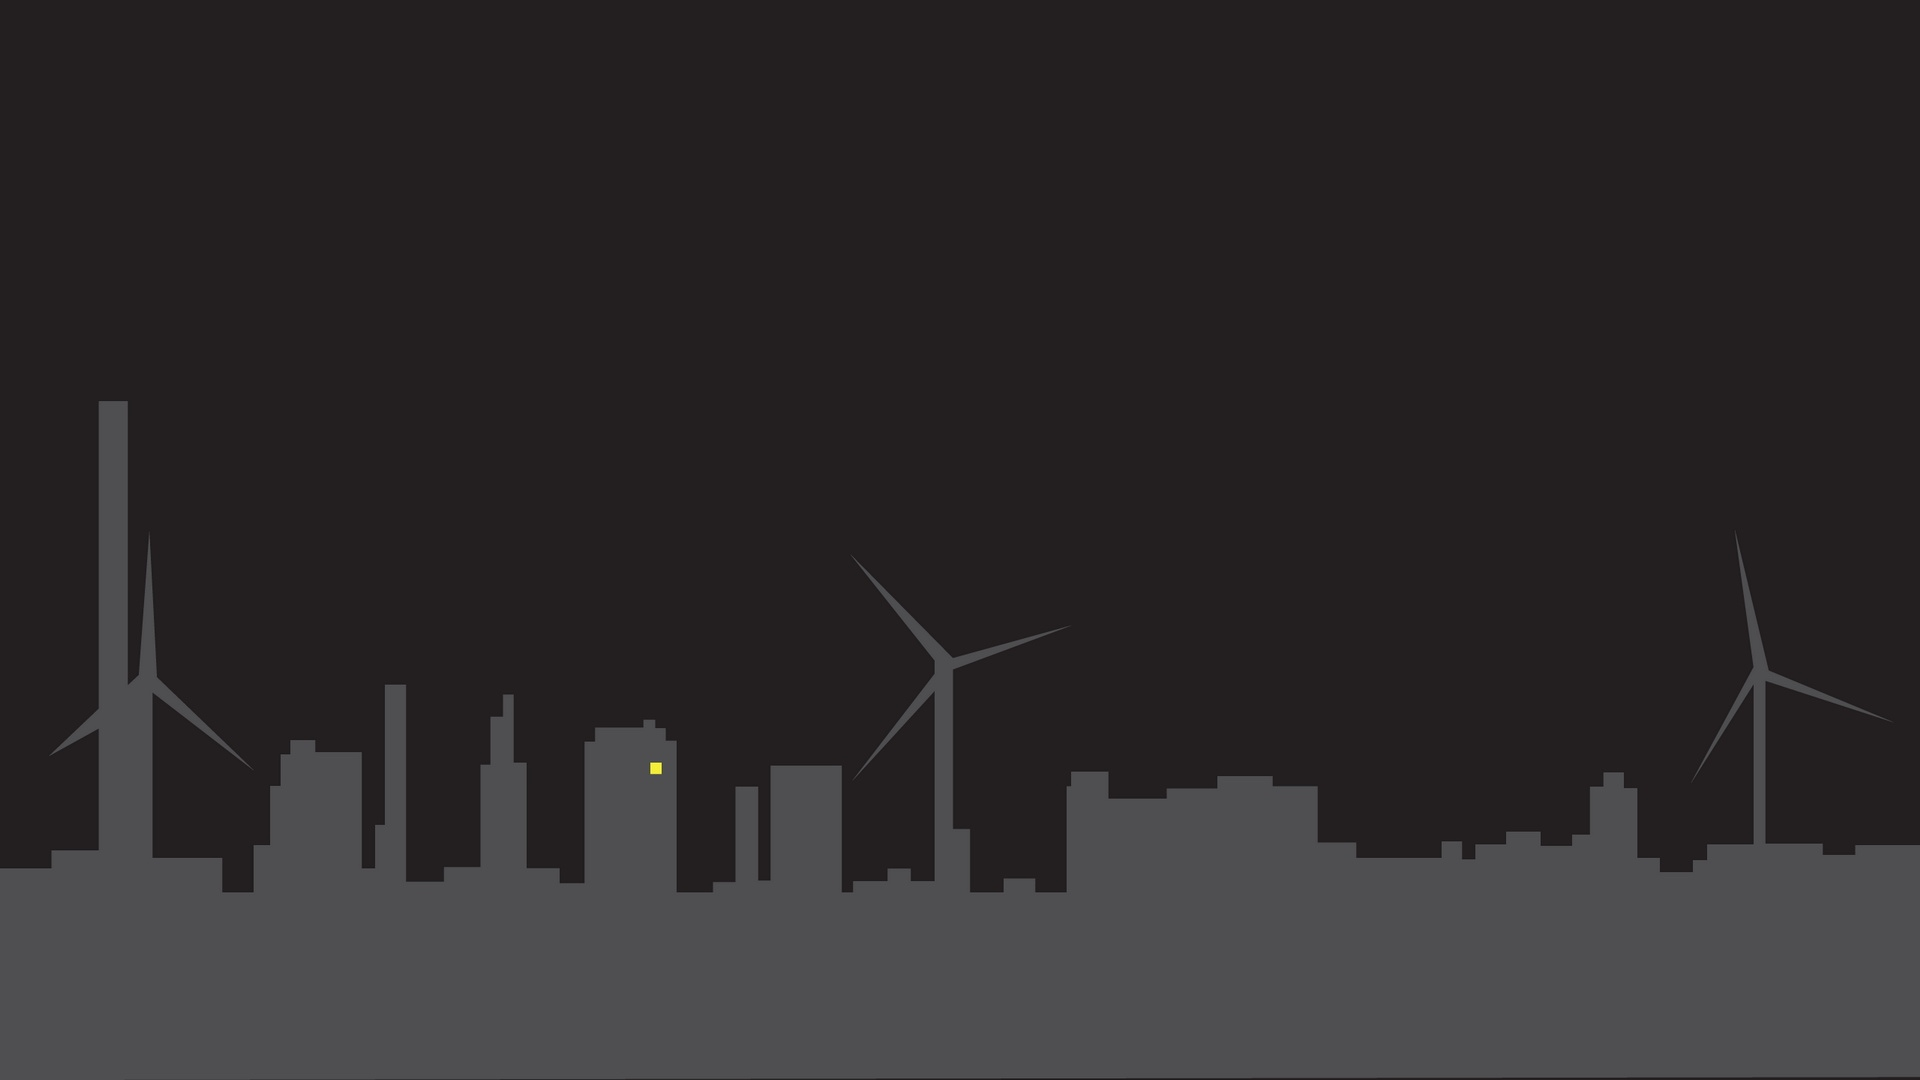 Download wallpaper 1920x1080 city silhouette for Minimal art silhouette